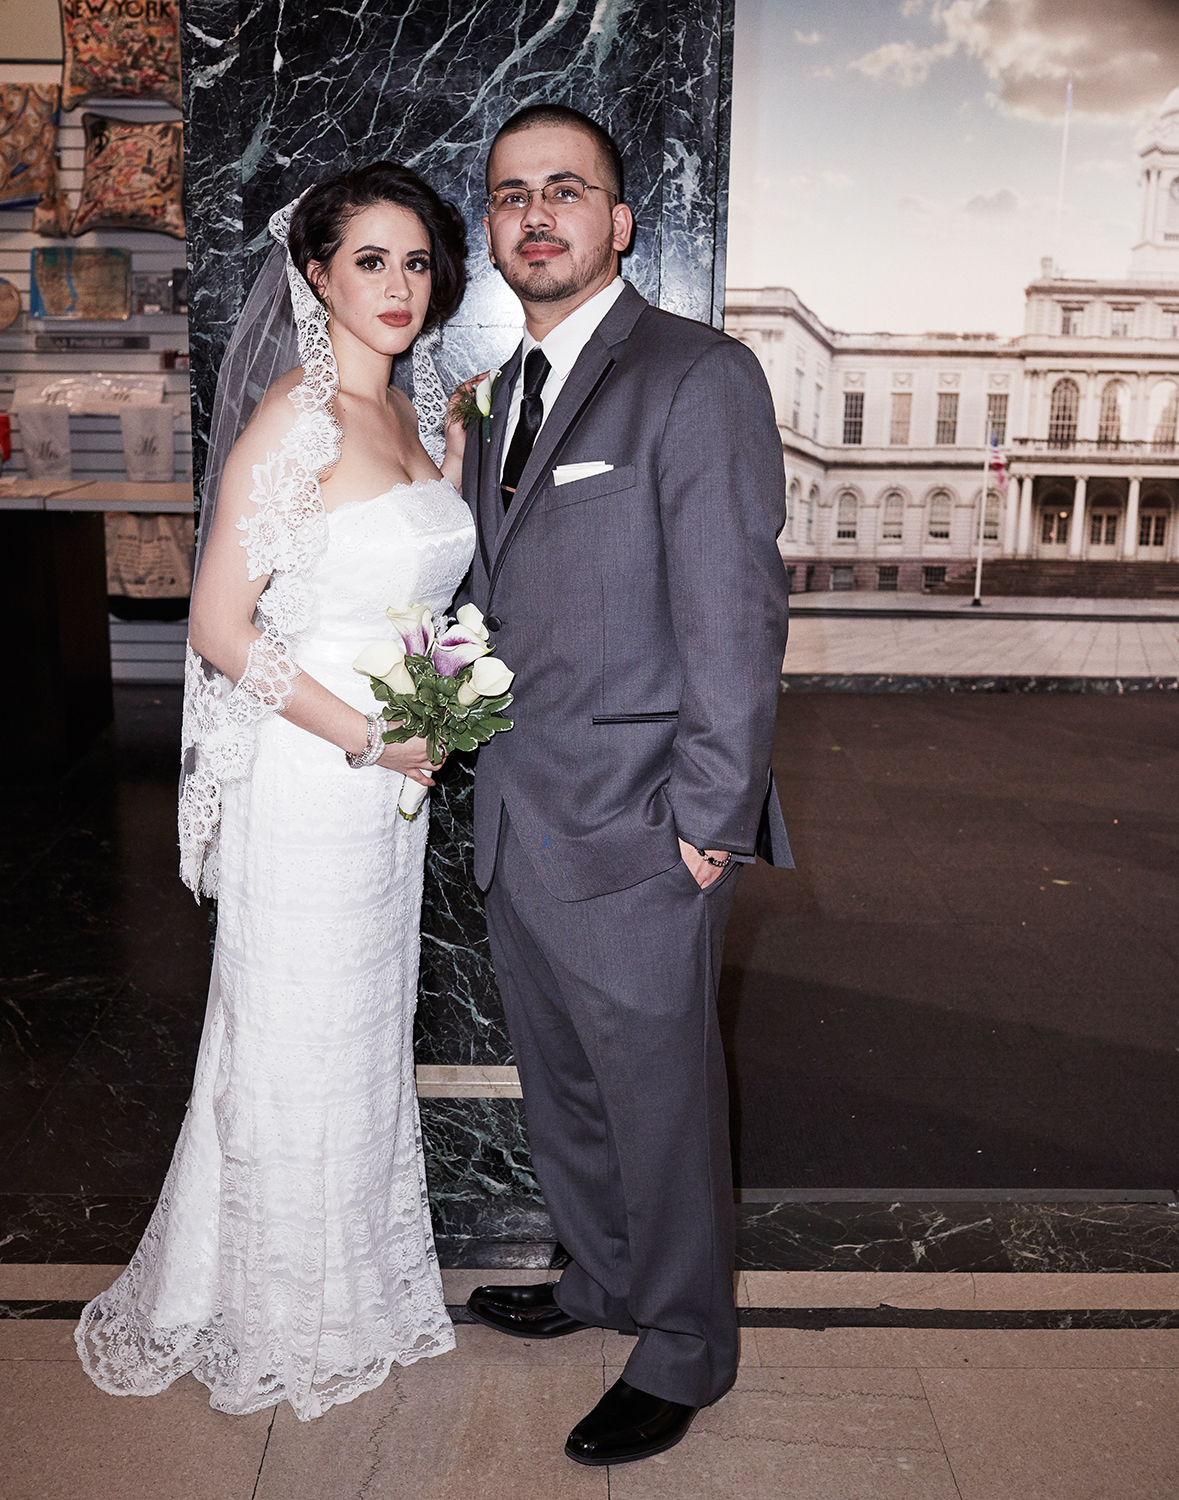 Madelin and Christopher just married at the City Clerk's Office, Manhattan Feb. 12th, 2016, Yahoo Style Feature Feb 2016